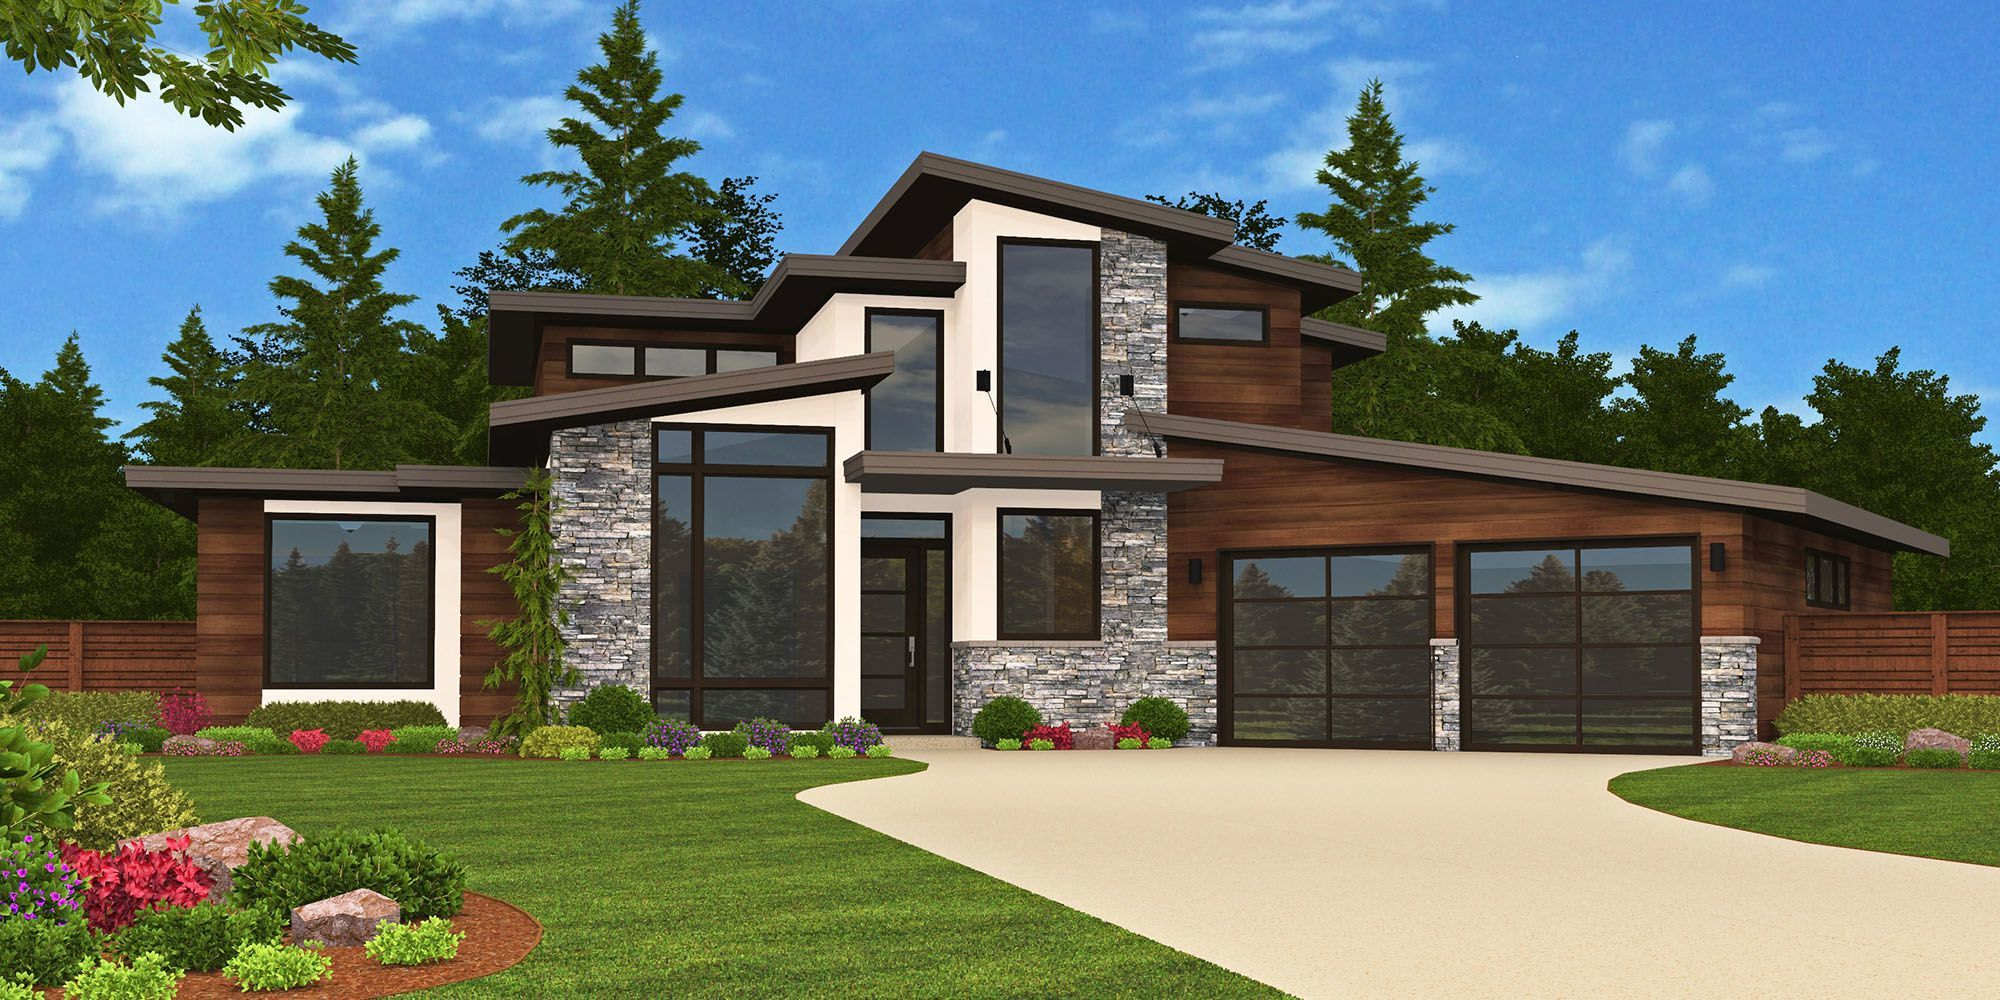 Sting x 16a house plan modern house plans for Modern house building plans